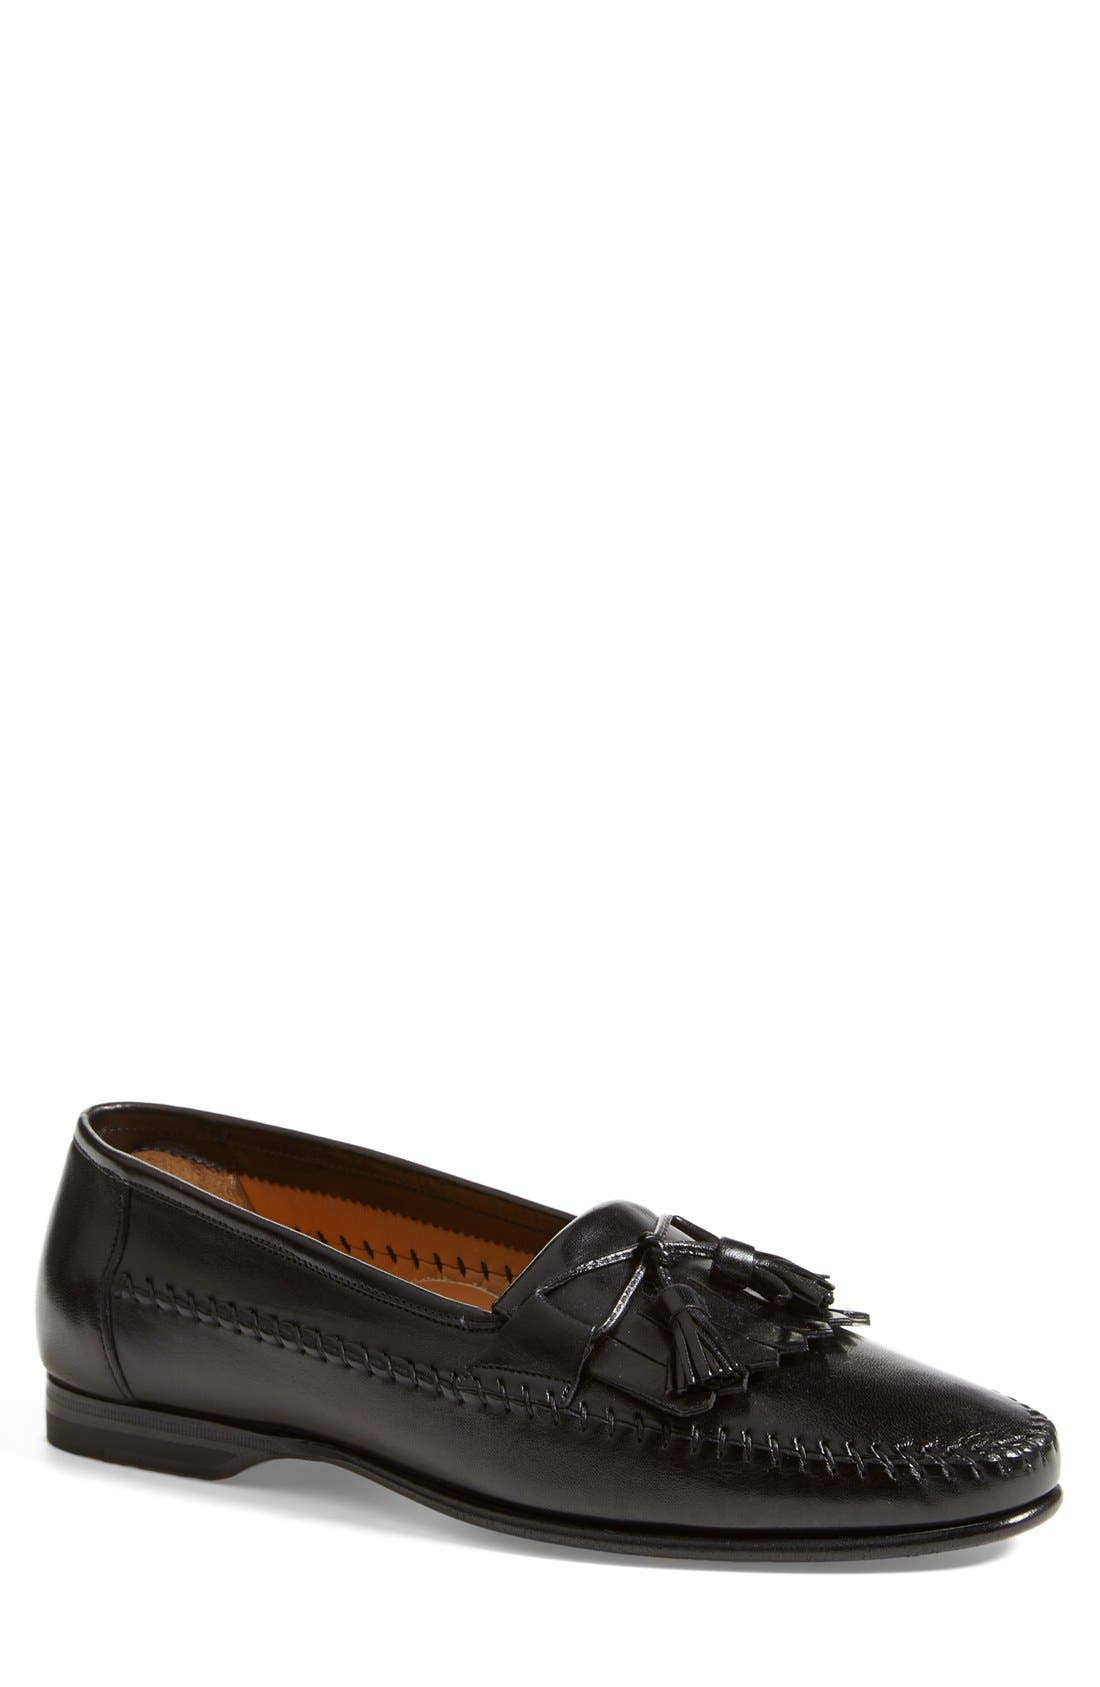 'Forester' Kiltie Tassel Loafer,                         Main,                         color, 001